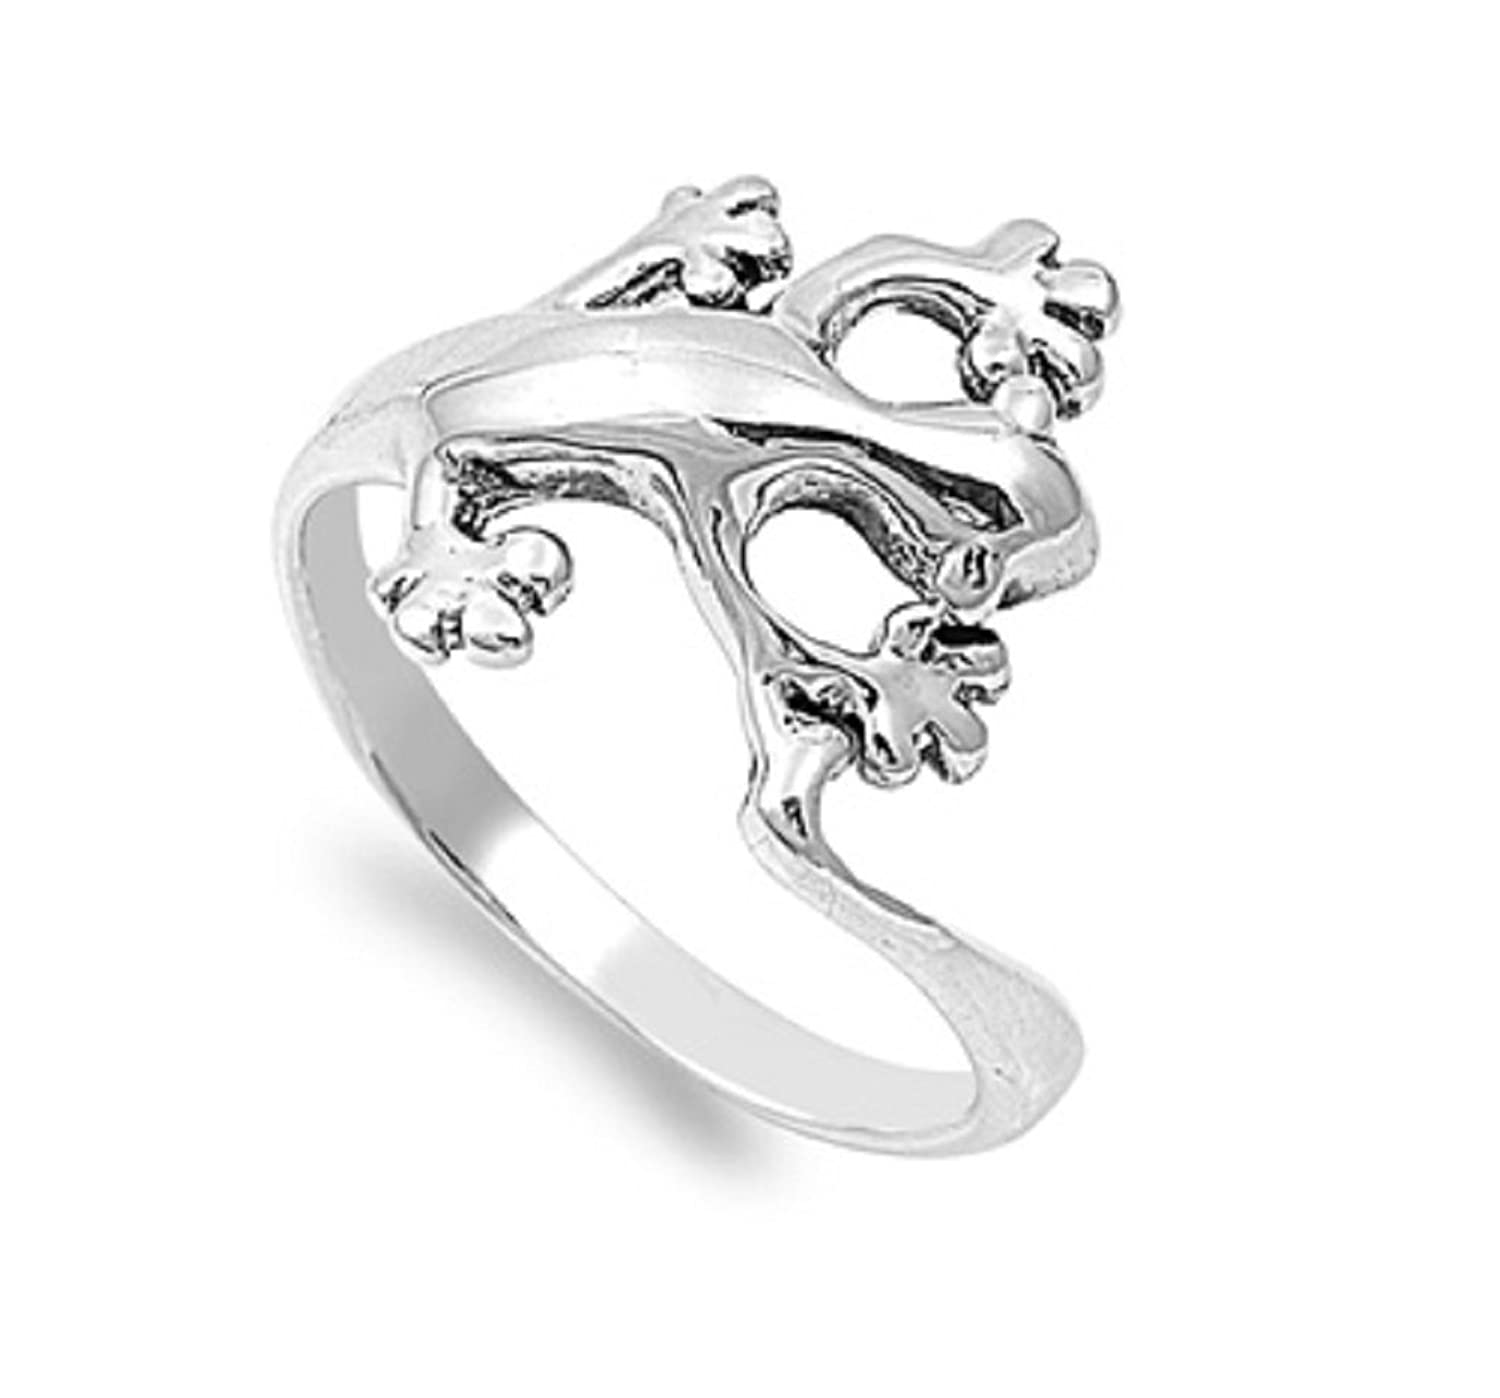 in hug on wrap iguana chameleon adjustable drop around chameleons animal best lizard images hugs ring lizards animals rings pinterest silver jewelry